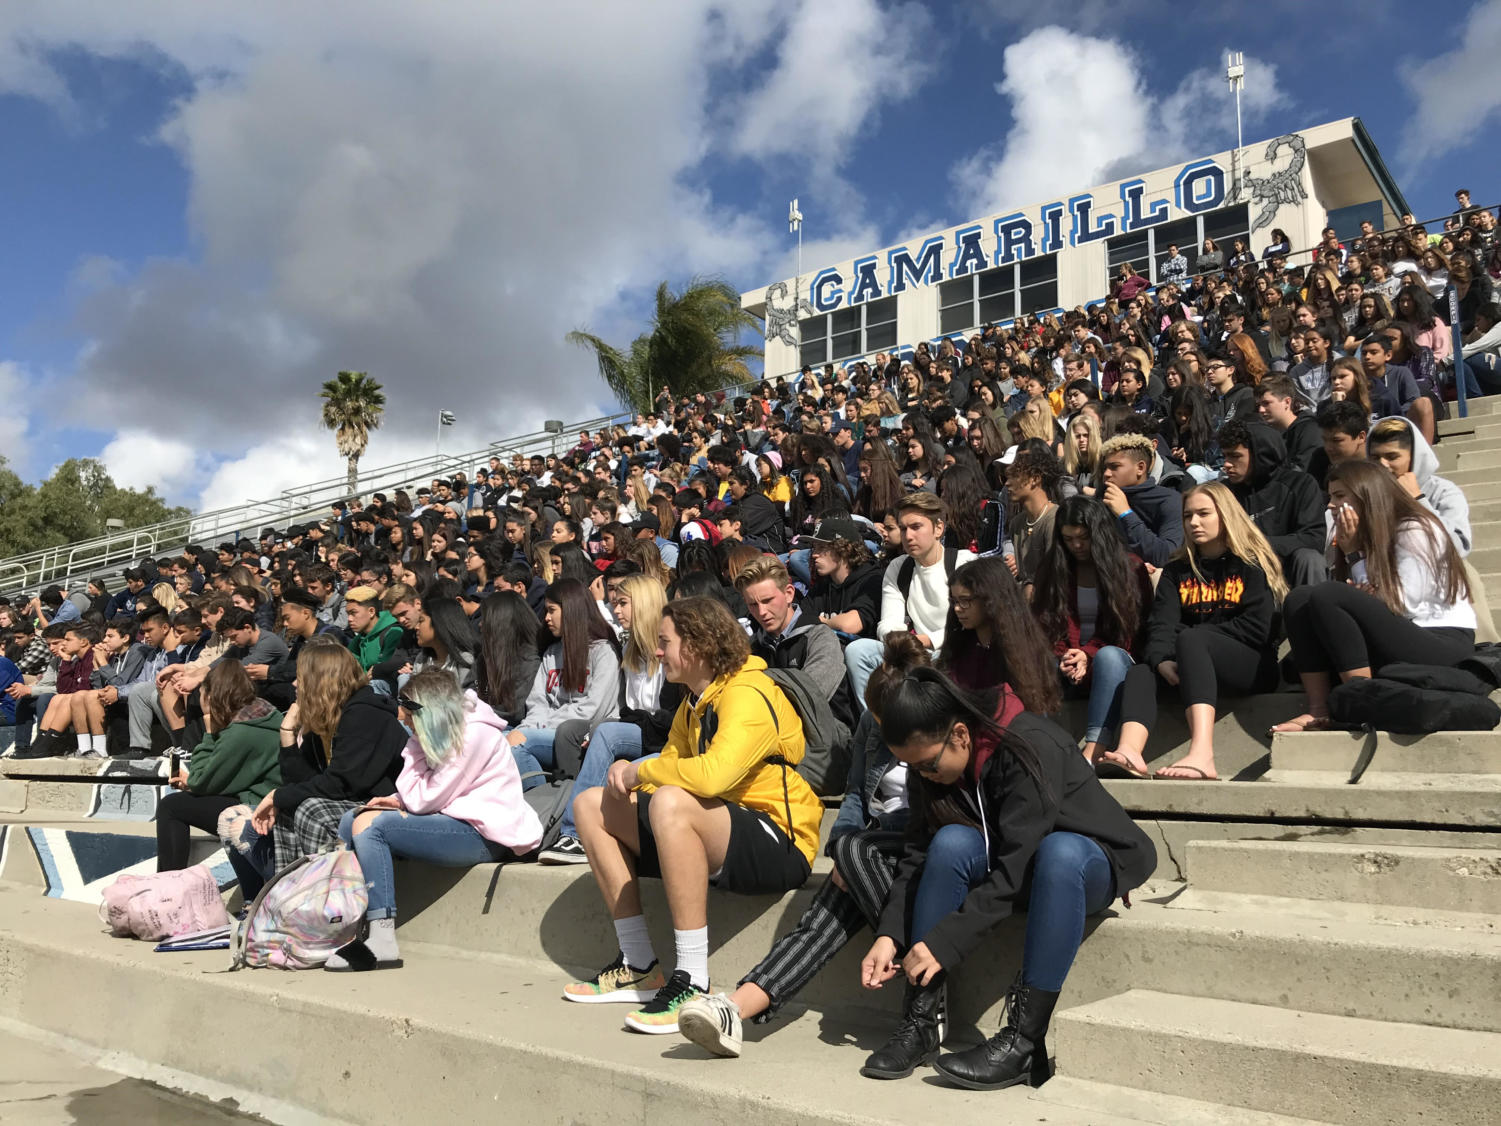 Students attend the walkout on March 24 by gathering in the stadium to honor the victims of the Parkland shooting.